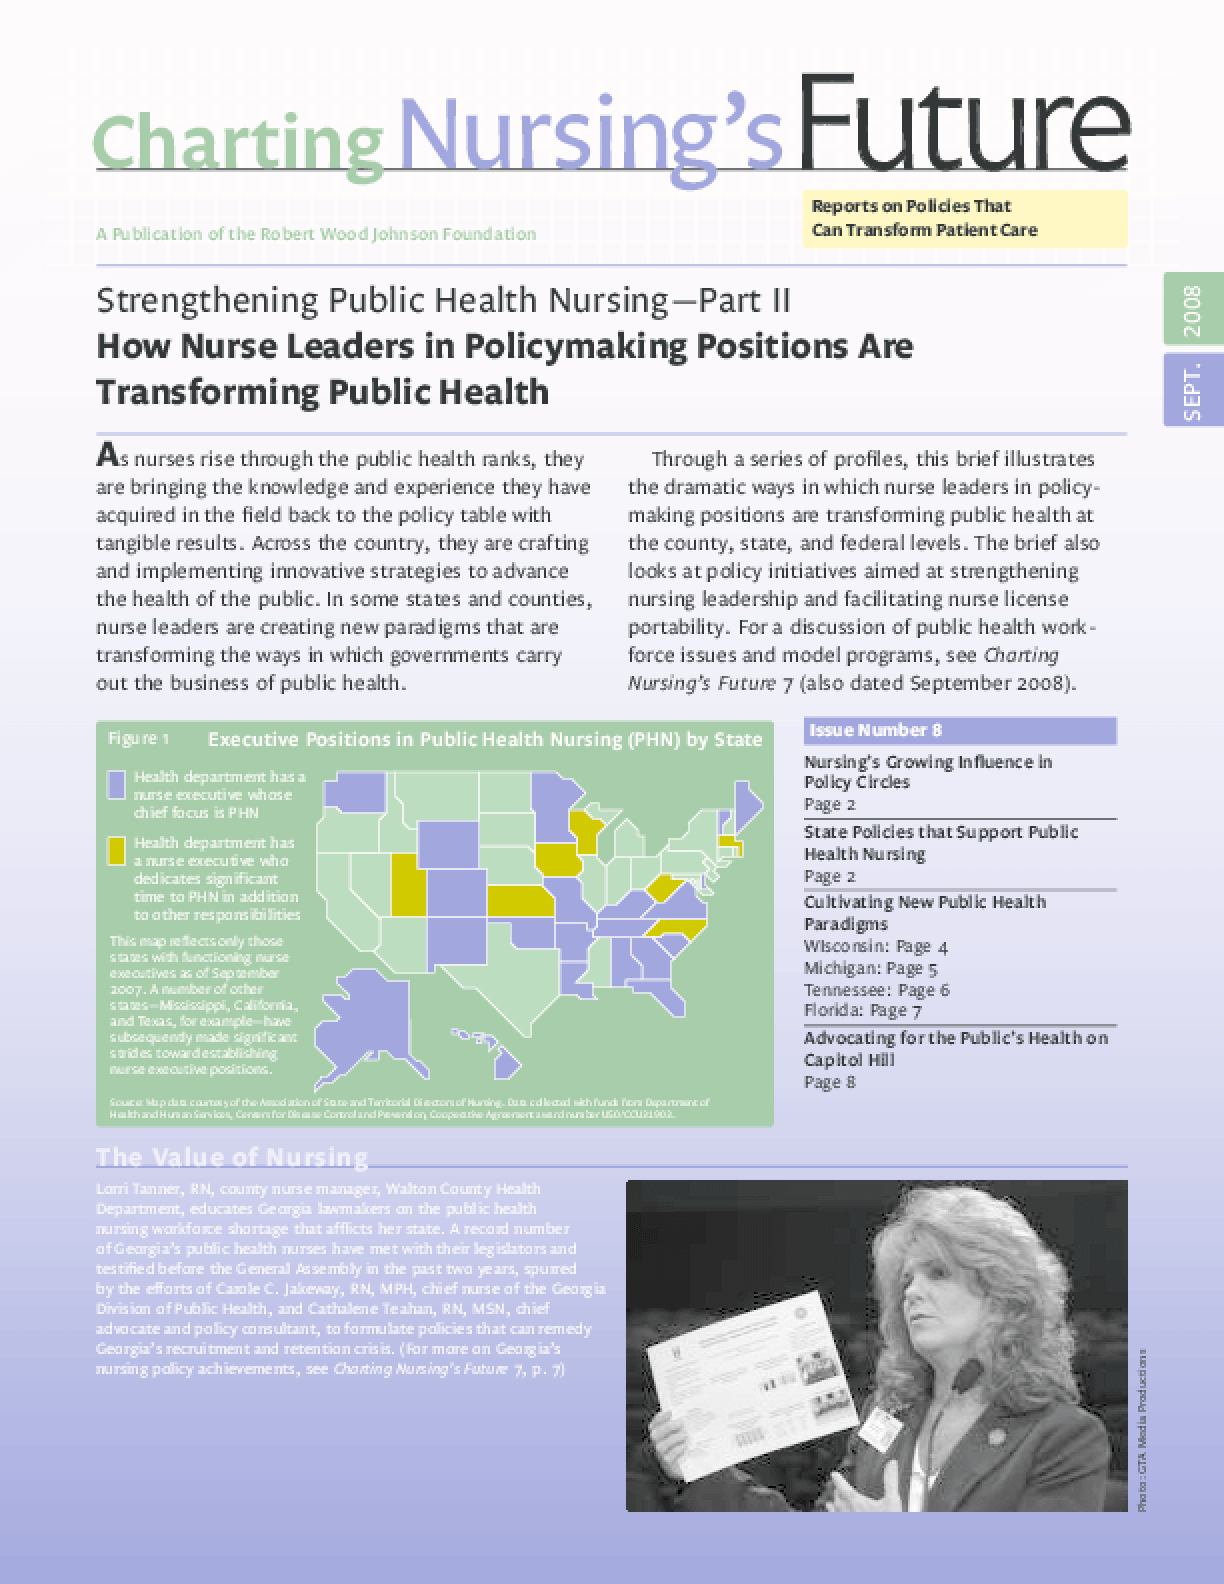 Strengthening Public Health Nursing Part II: How Nurse Leaders in Policy-Making Positions Are Transforming Public Health